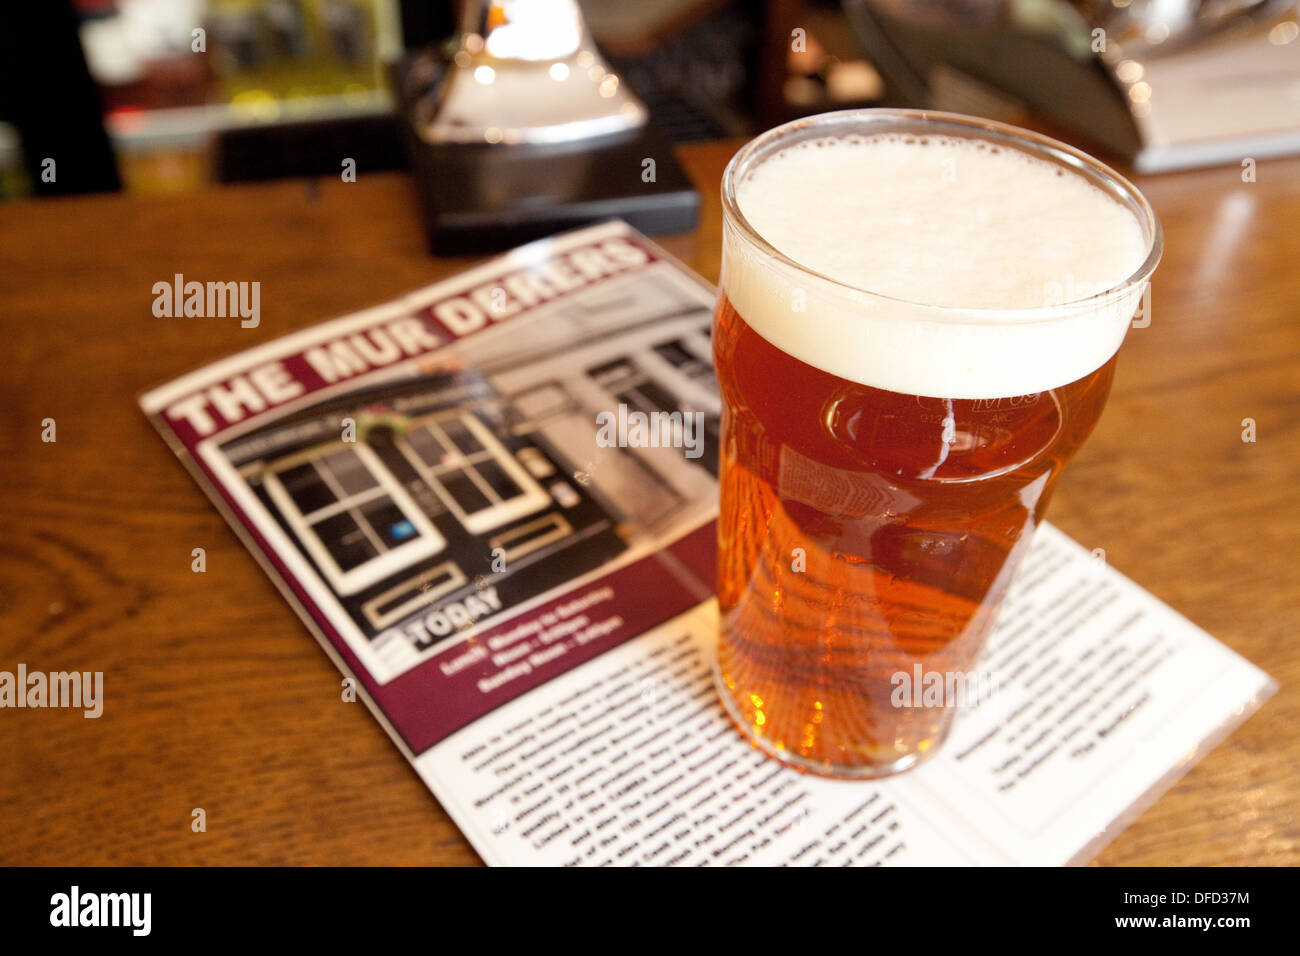 A pint of beer and the menu on the bar, The Murderers Pub restaurant, Norwich, Norfolk UK - Stock Image